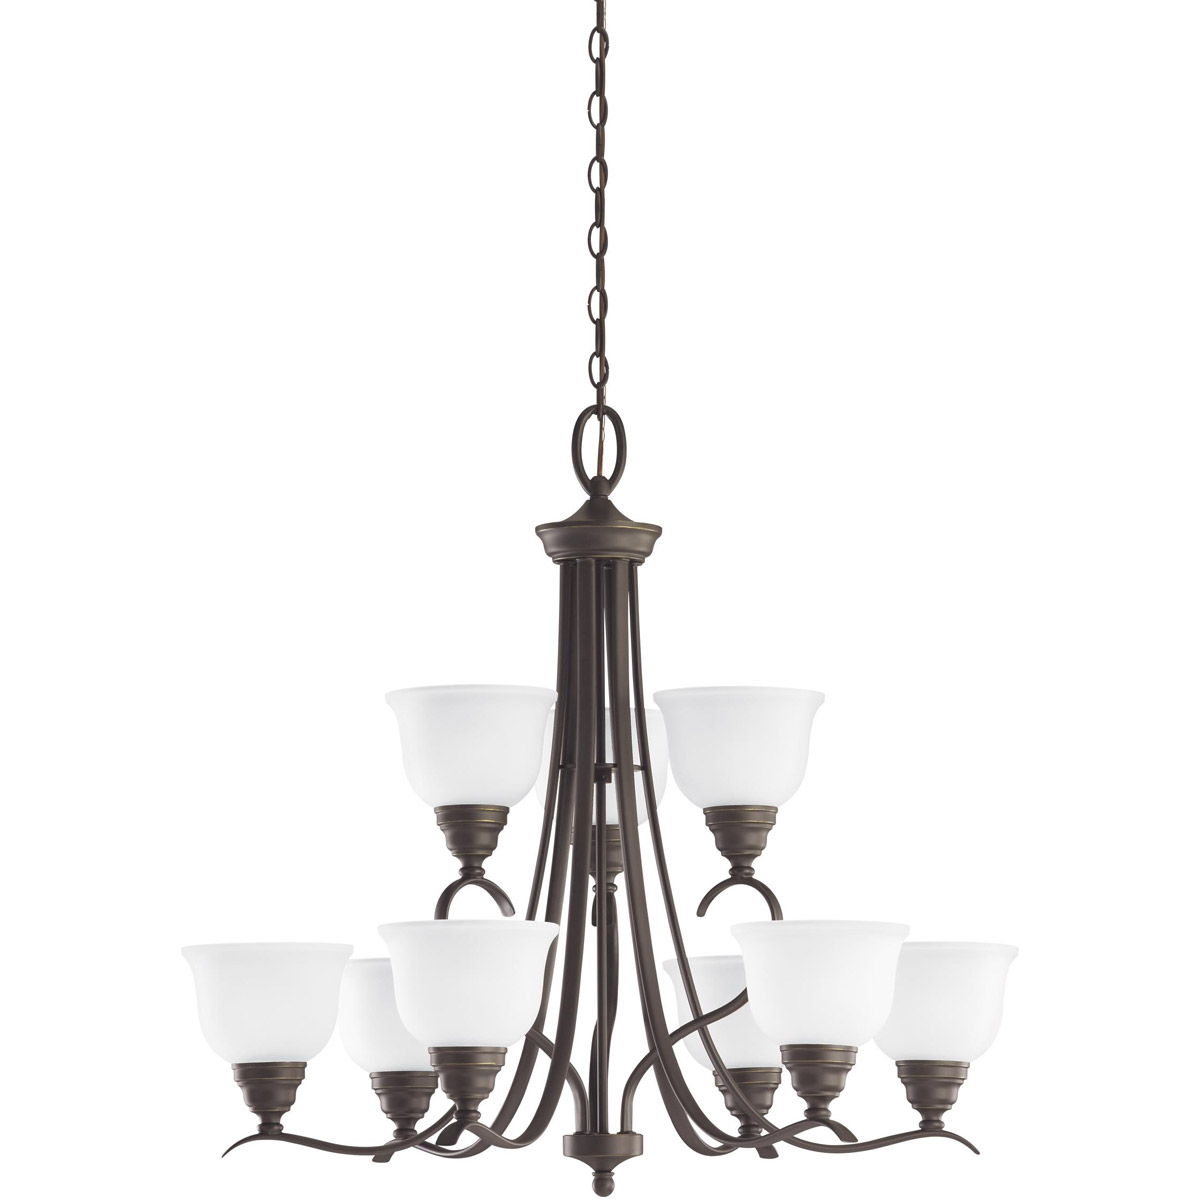 Sea Gull 31627-782 Wheaton 9 Light 31 inch Heirloom Bronze Chandelier Ceiling Light in Standard photo